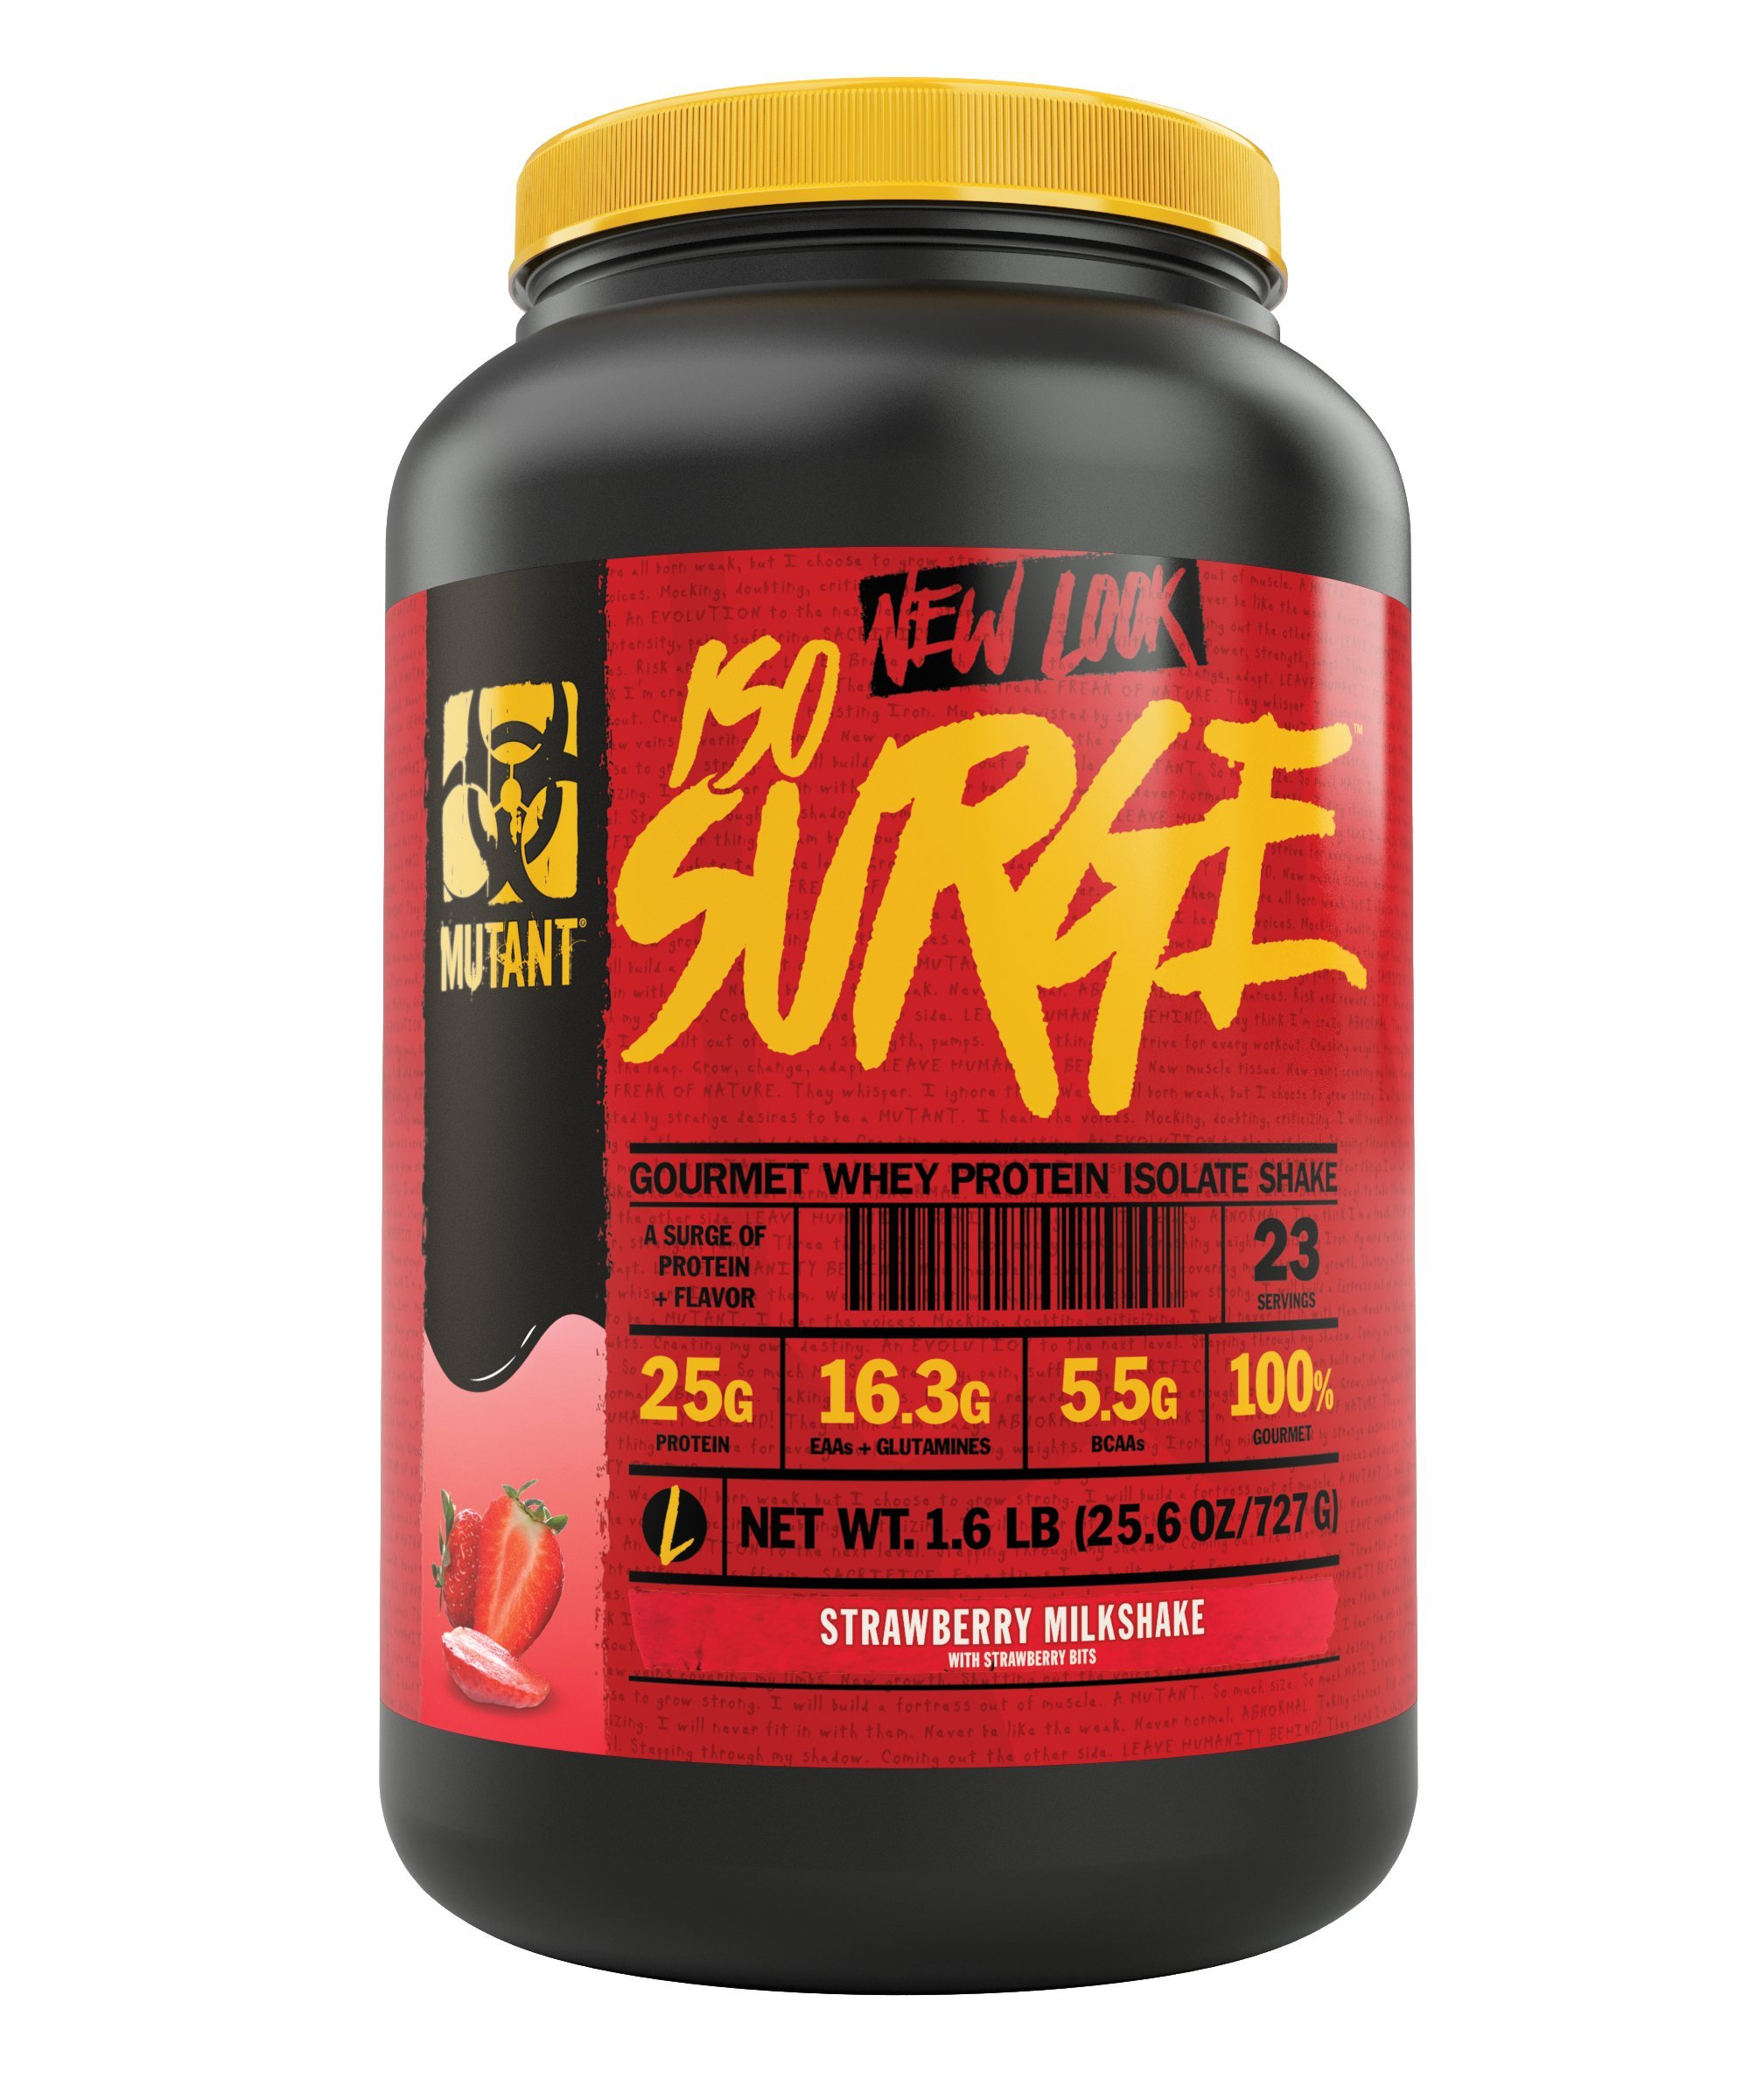 Mutant ISO Surge Whey Protein Powder Acts FAST to Help Recover, Build Muscle, Bulk and Strength, Uses Only High Quality Ingredients, 1.6 lb - Strawberry Milkshake